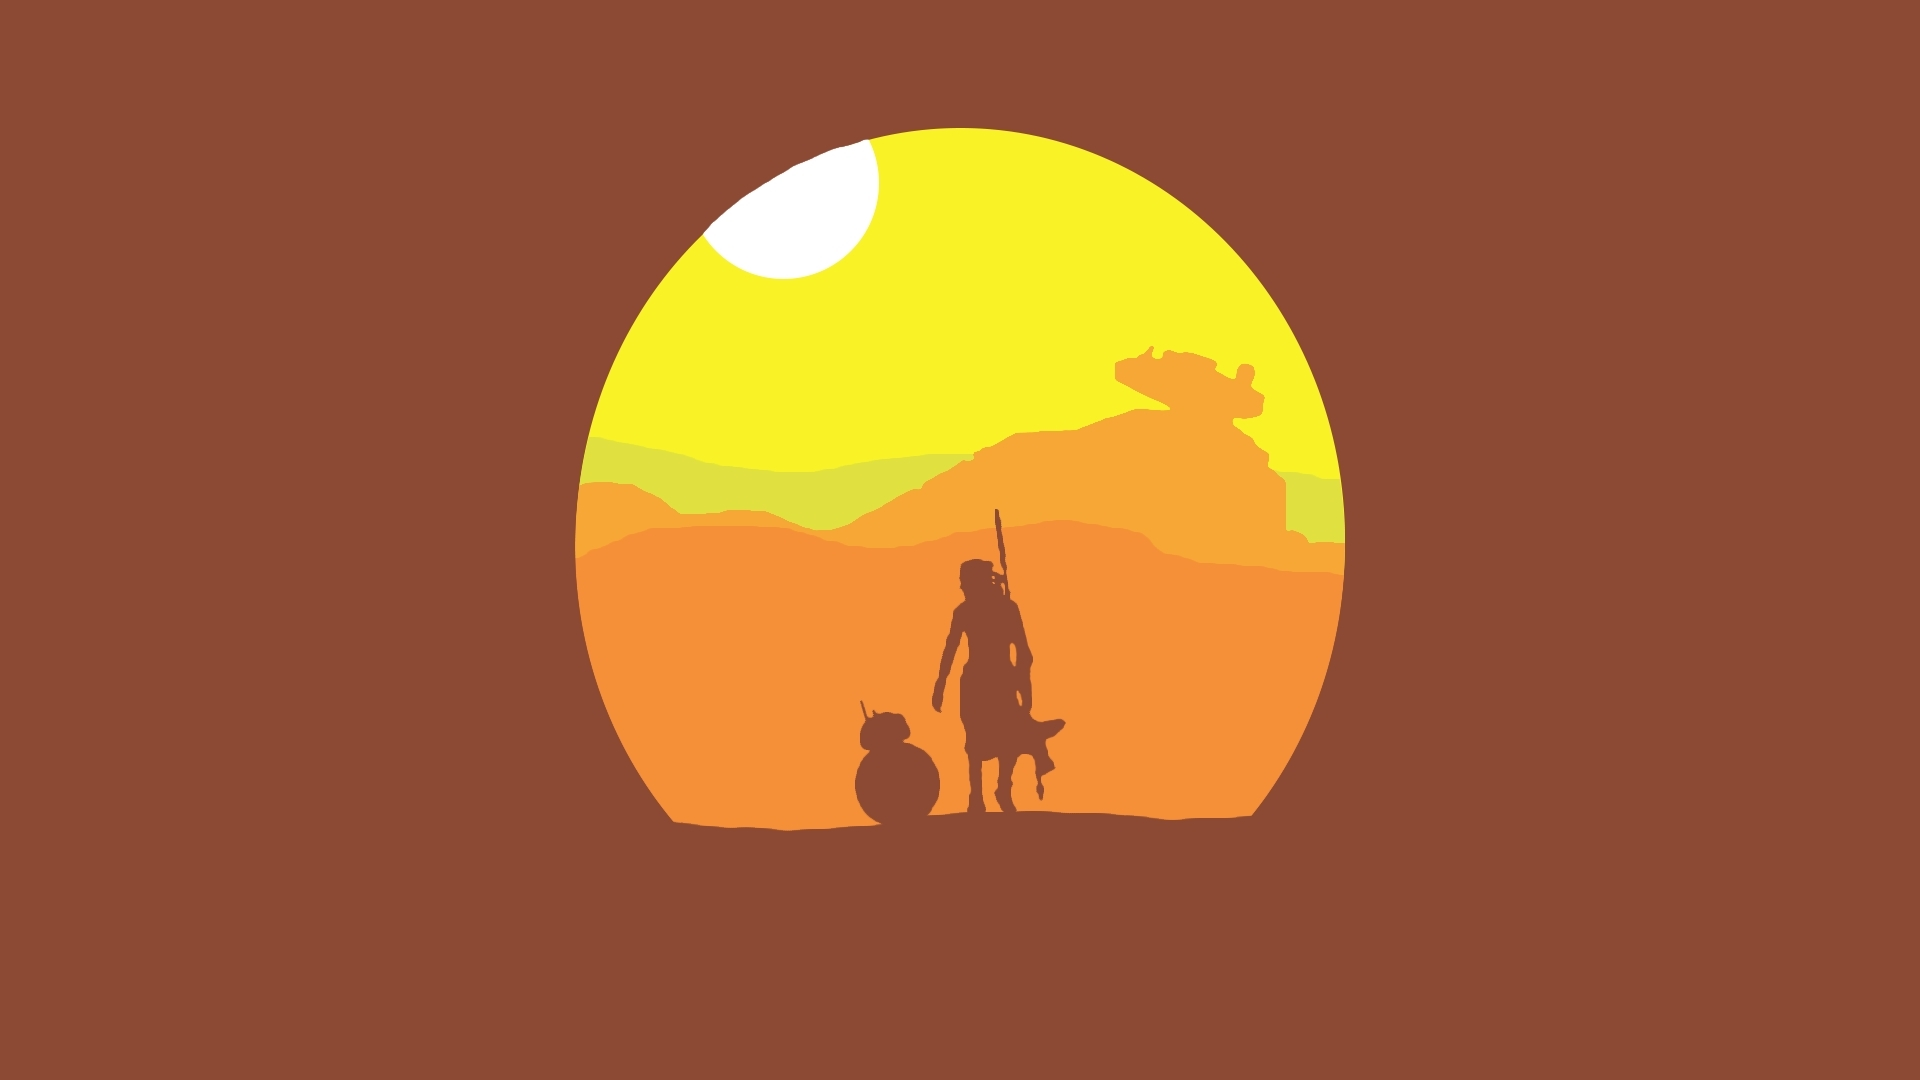 minimal star wars wallpapers - album on imgur